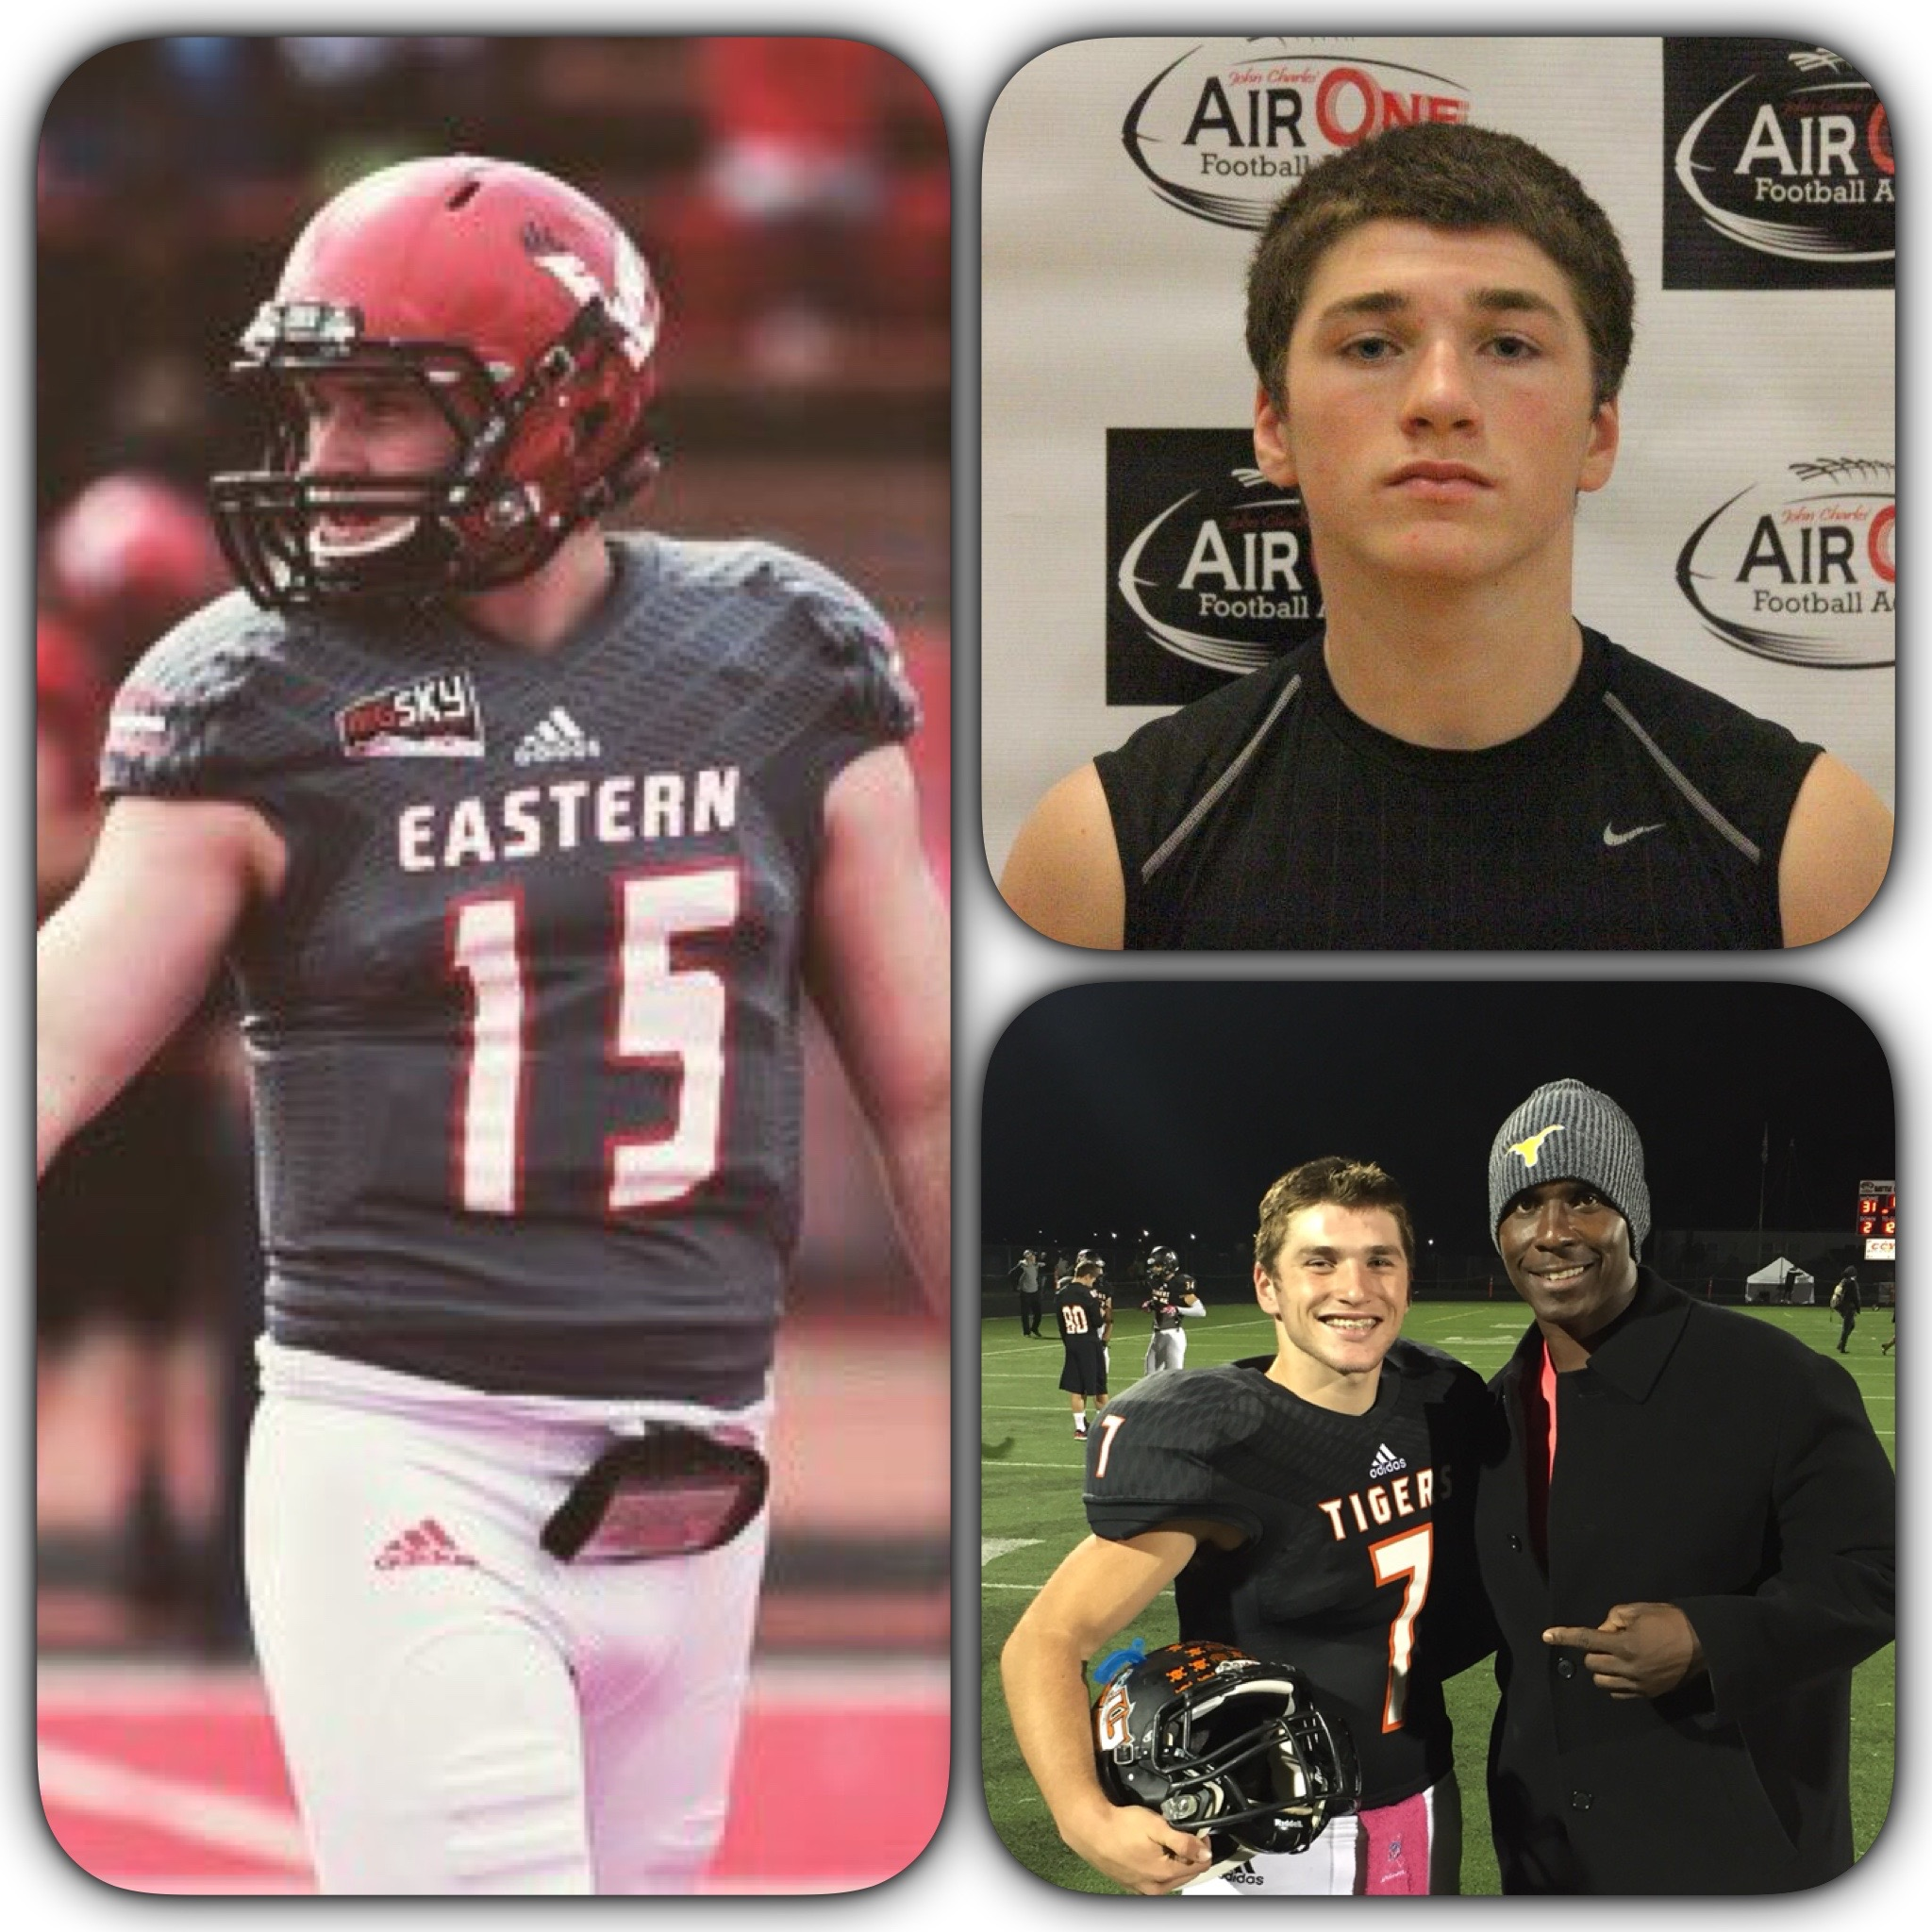 GUNNER TALKINGTON- BATTLE GROUND HS- EASTERN WASHINGTON